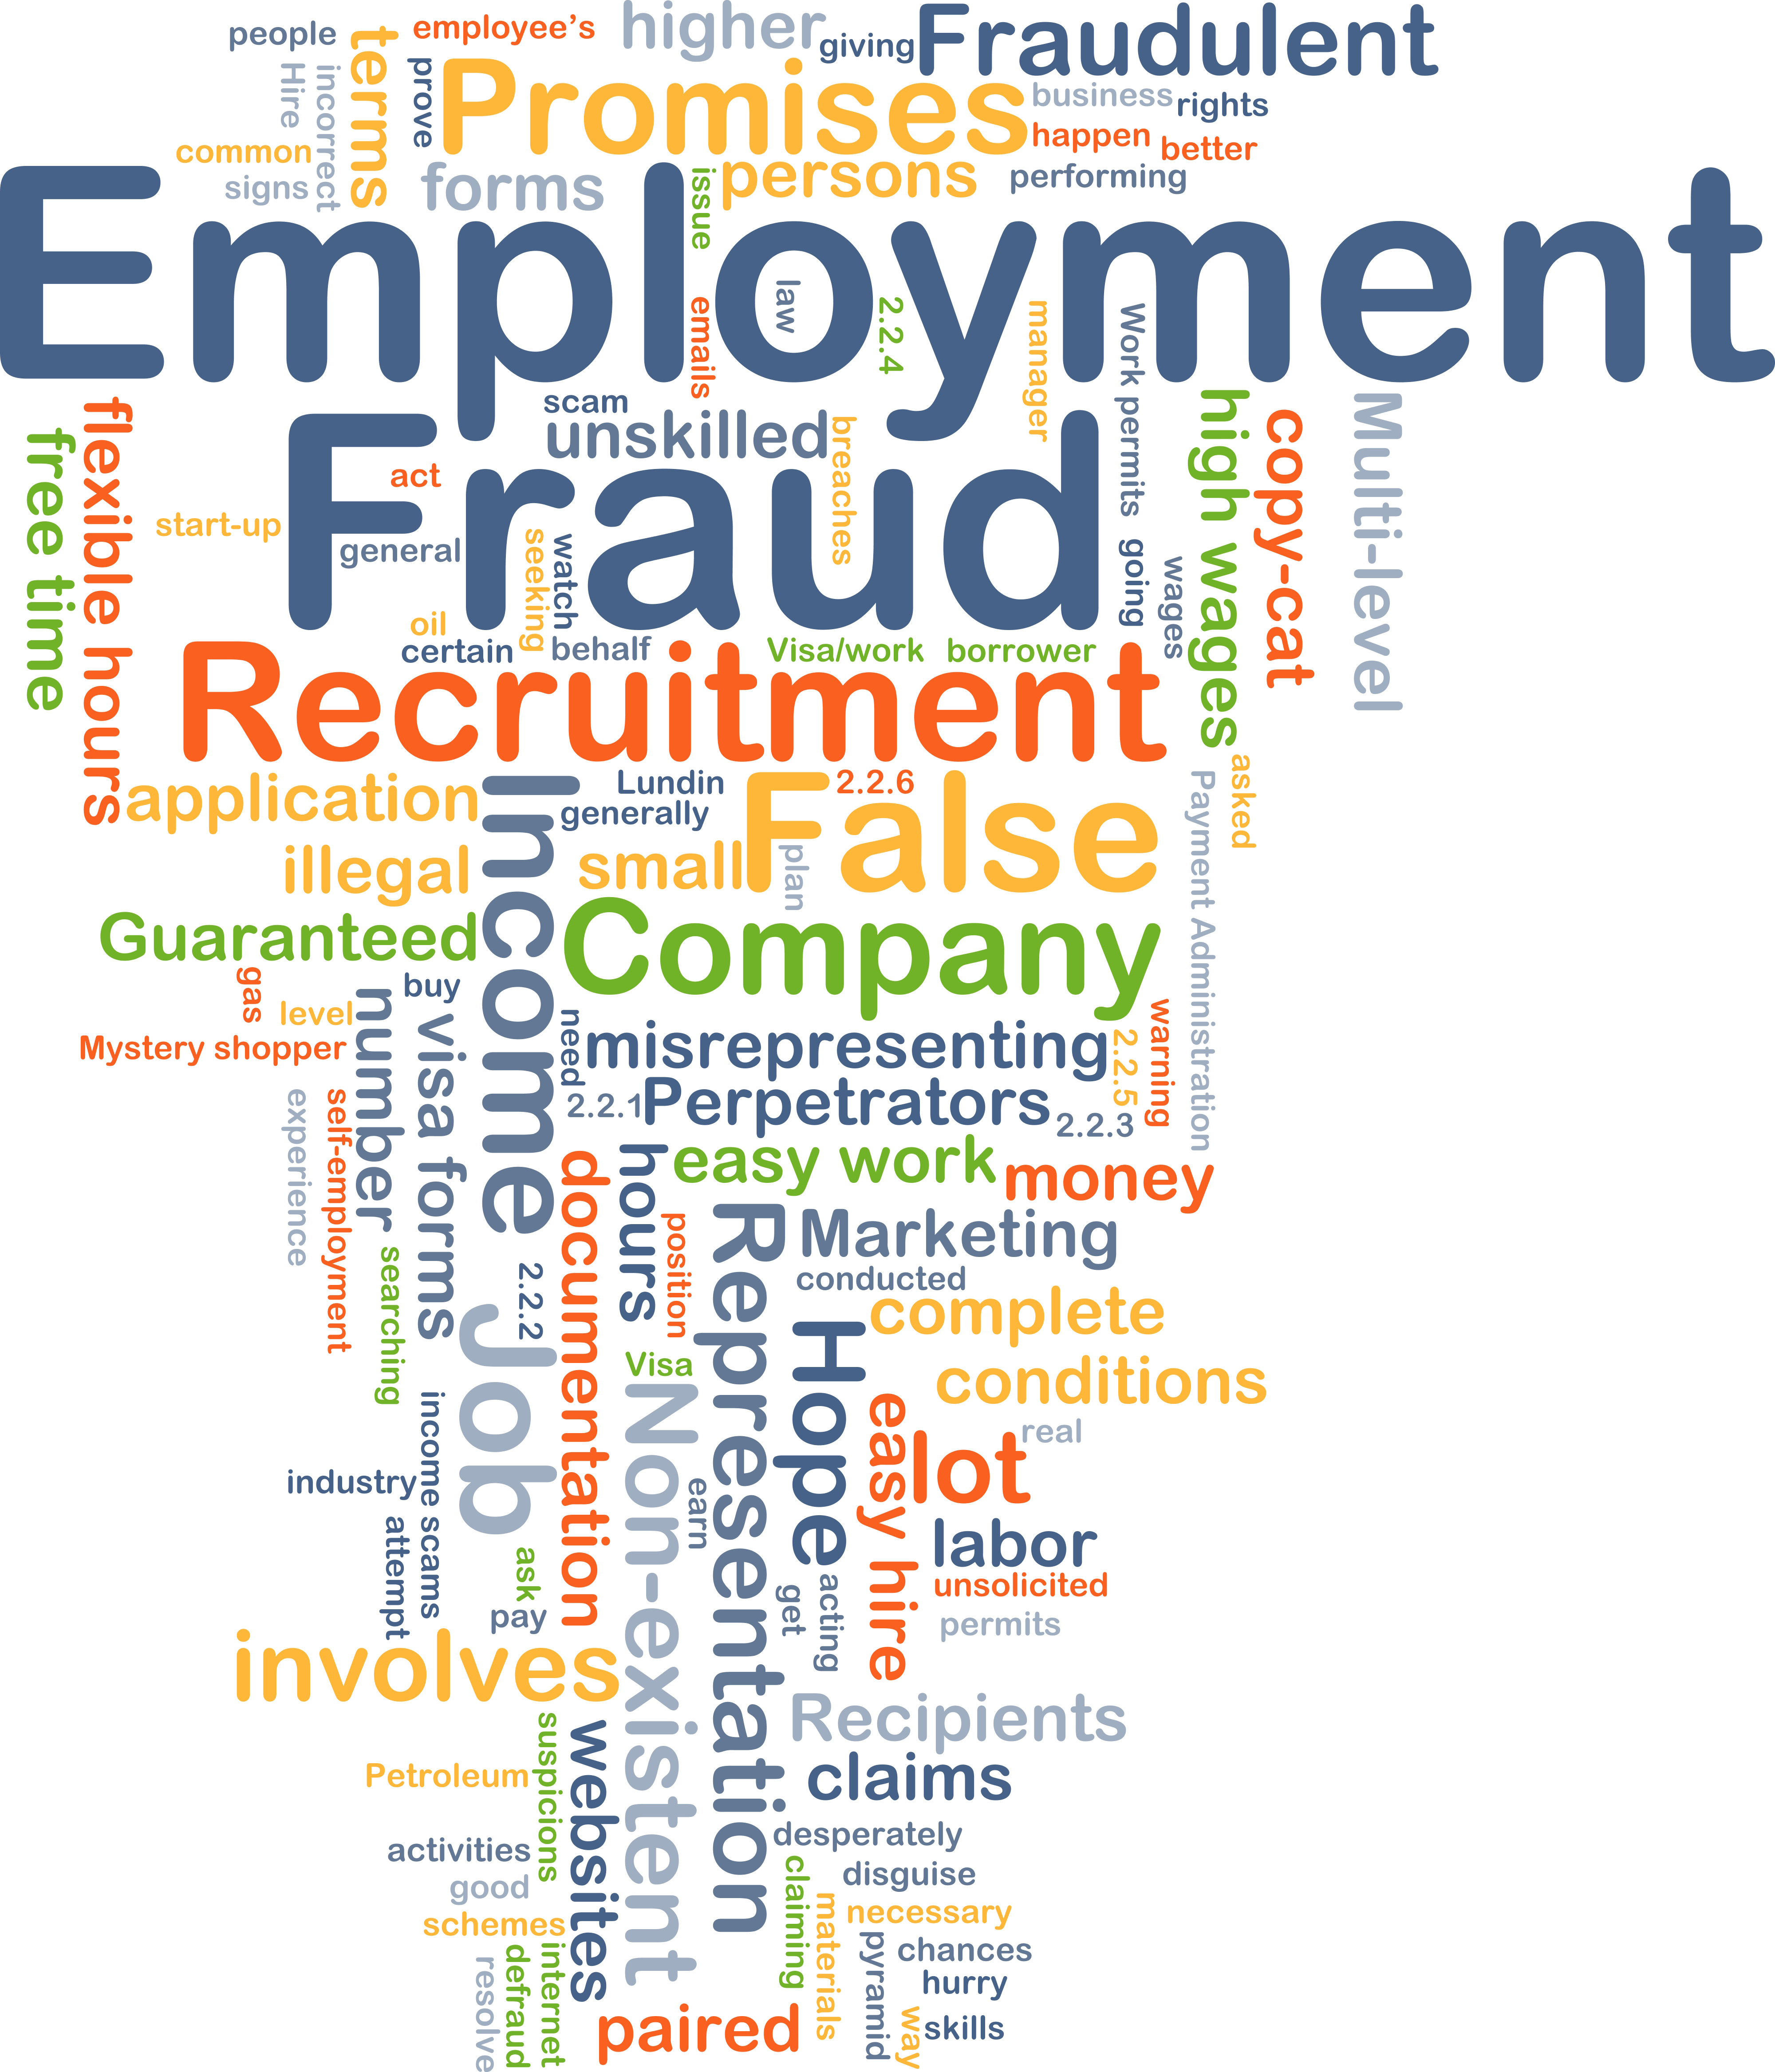 illegal recruitment Illegal recruitment when committed by a syndicate or in large scale shall be considered an offense involving economic sabotage illegal recruitment is deemed committed by a syndicate if carried out by a group of three (3) or more persons conspiring or confederating with one another.